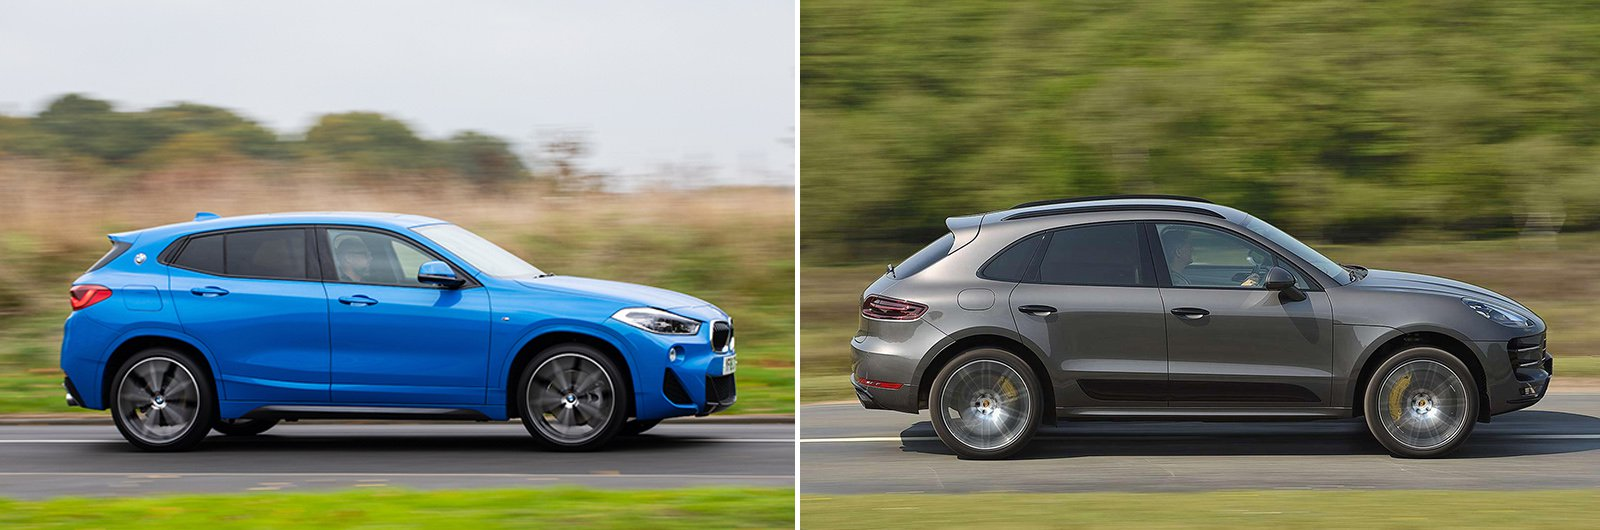 New BMW X2 vs used Porsche Macan – driving